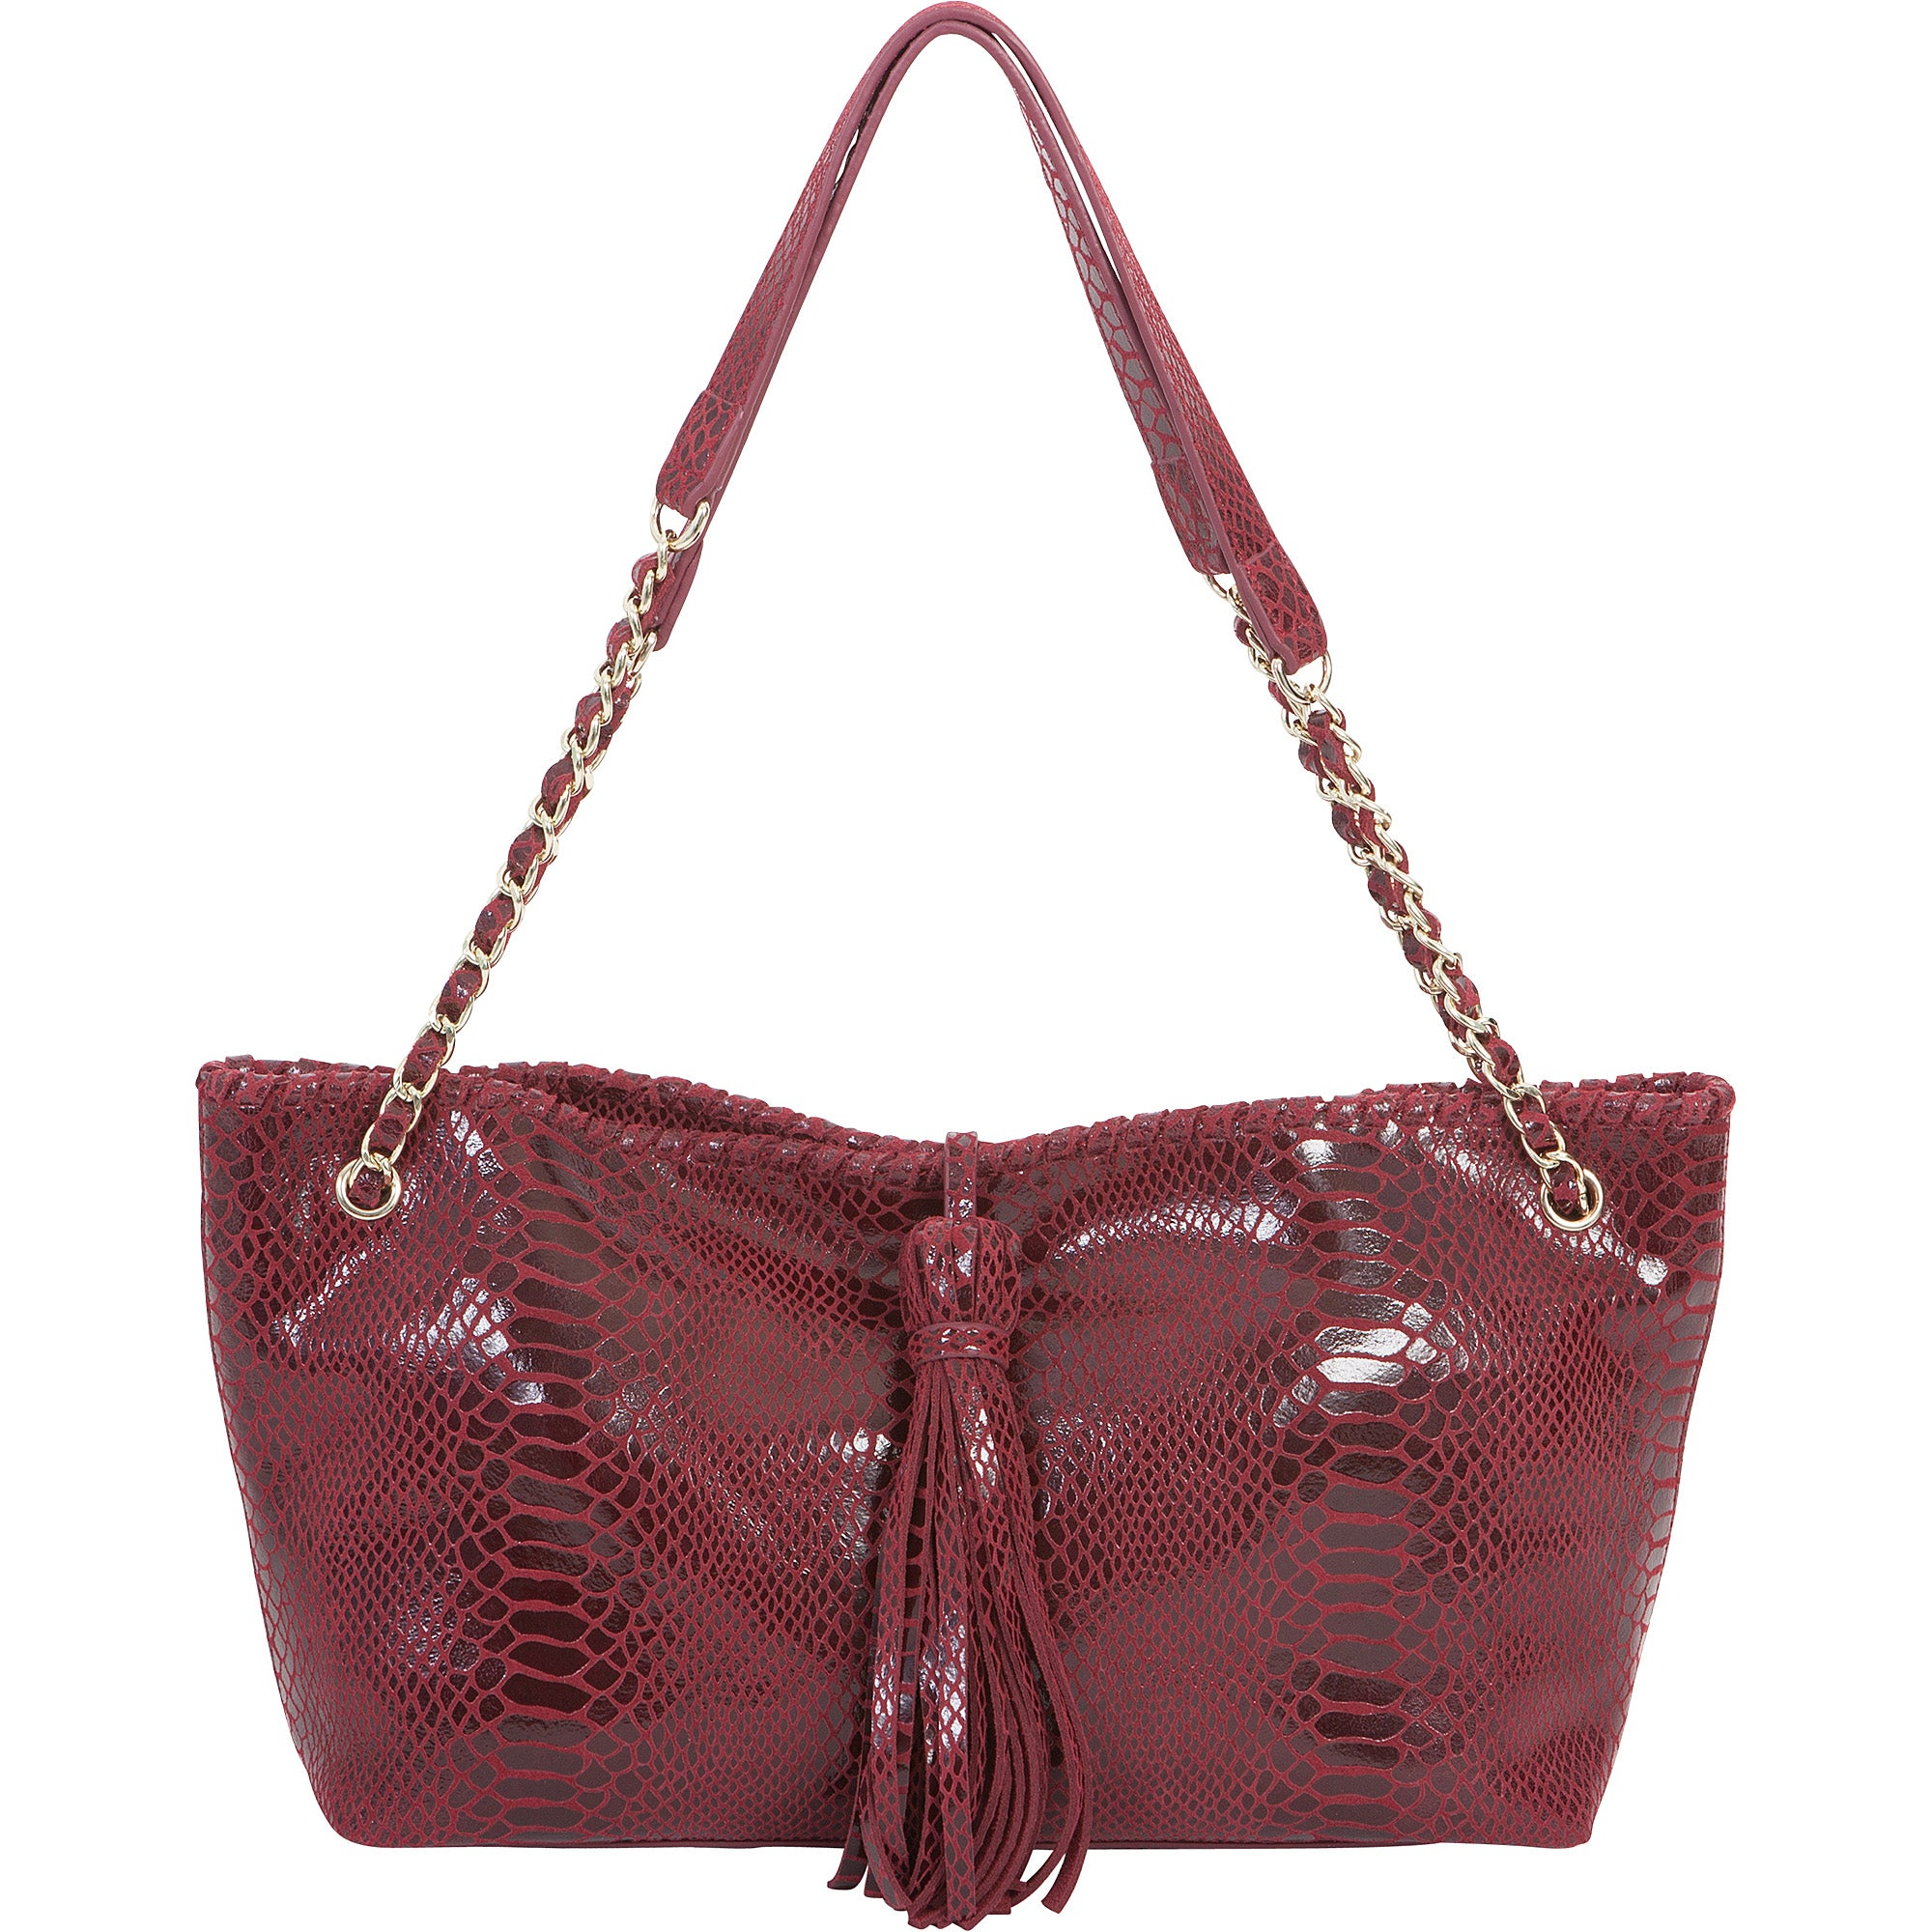 Sam leather Convertible Shoulder Bag - Bordeaux